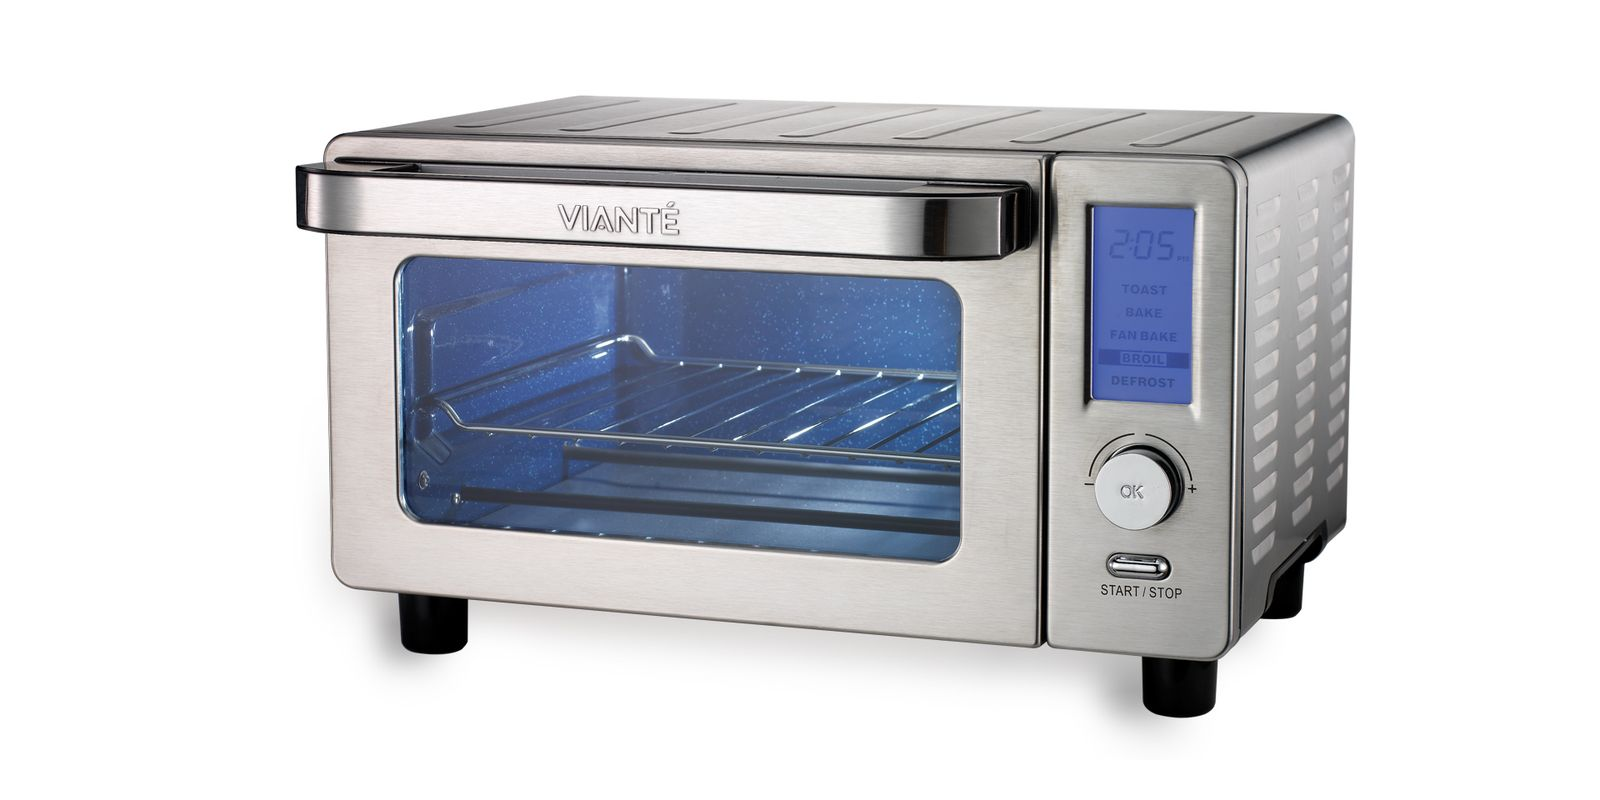 viante true blue convection toaster oven cuc 04e